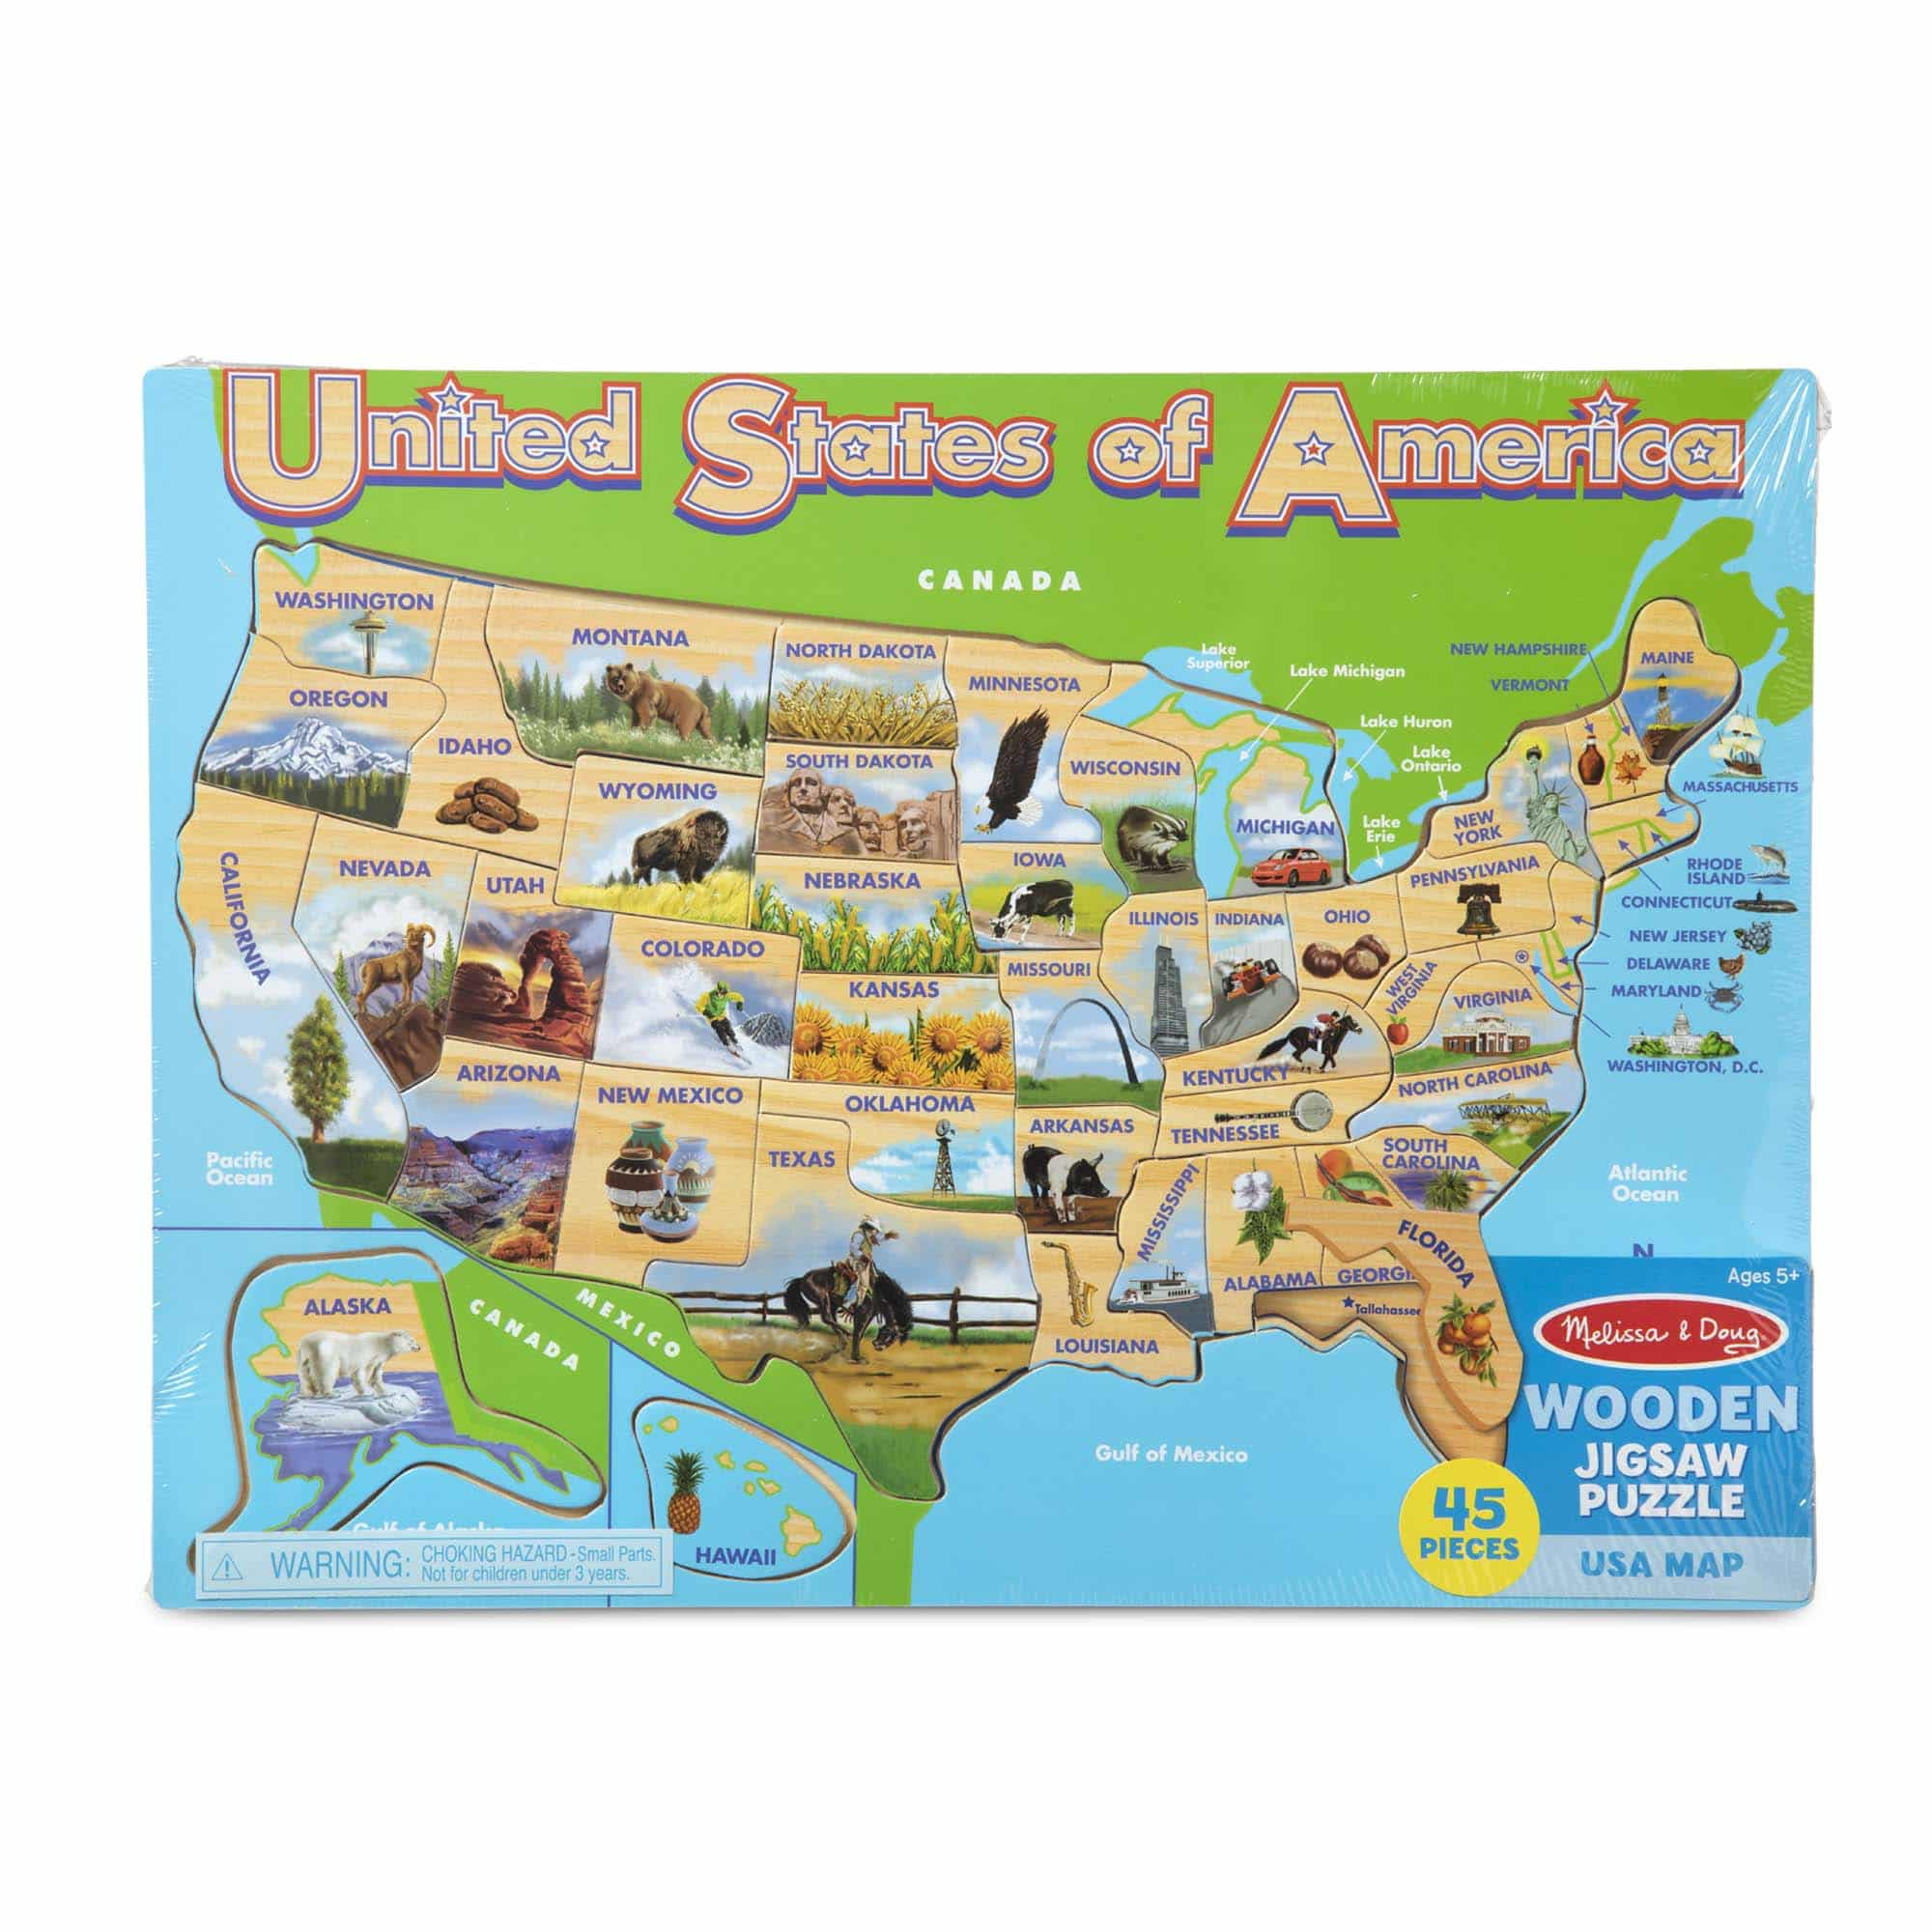 USA Map Wooden Jigsaw Puzzle - A2Z Science & Learning Toy ...